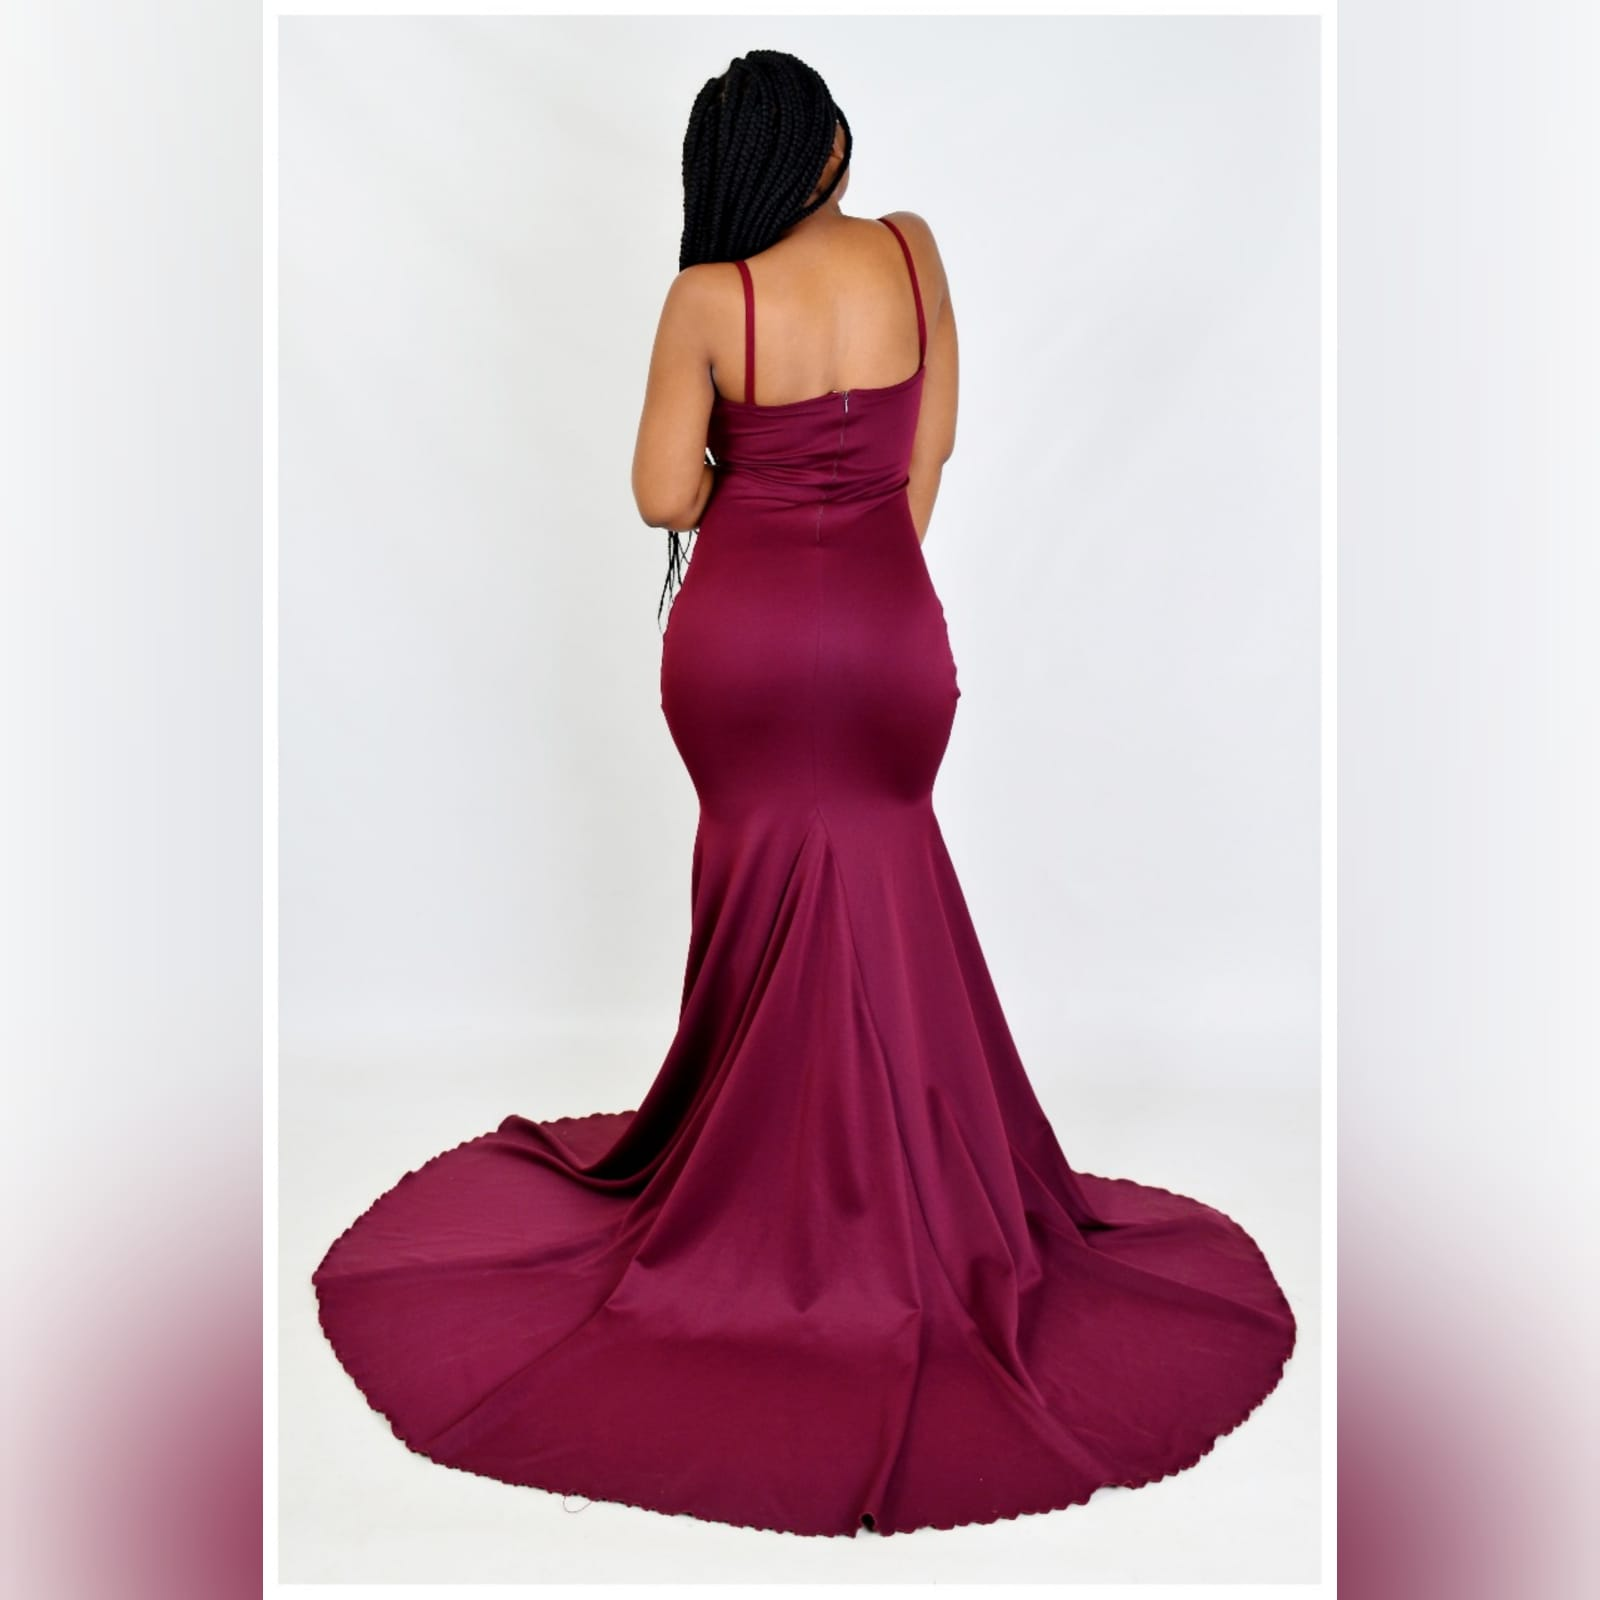 Elegant soft mermaid dress in burgundy 3 a simple elegant soft mermaid dress in burgundy, for an engagement celebration. With a train to add some drama to the simple look and removable shoulder straps for the choice of use and more support.